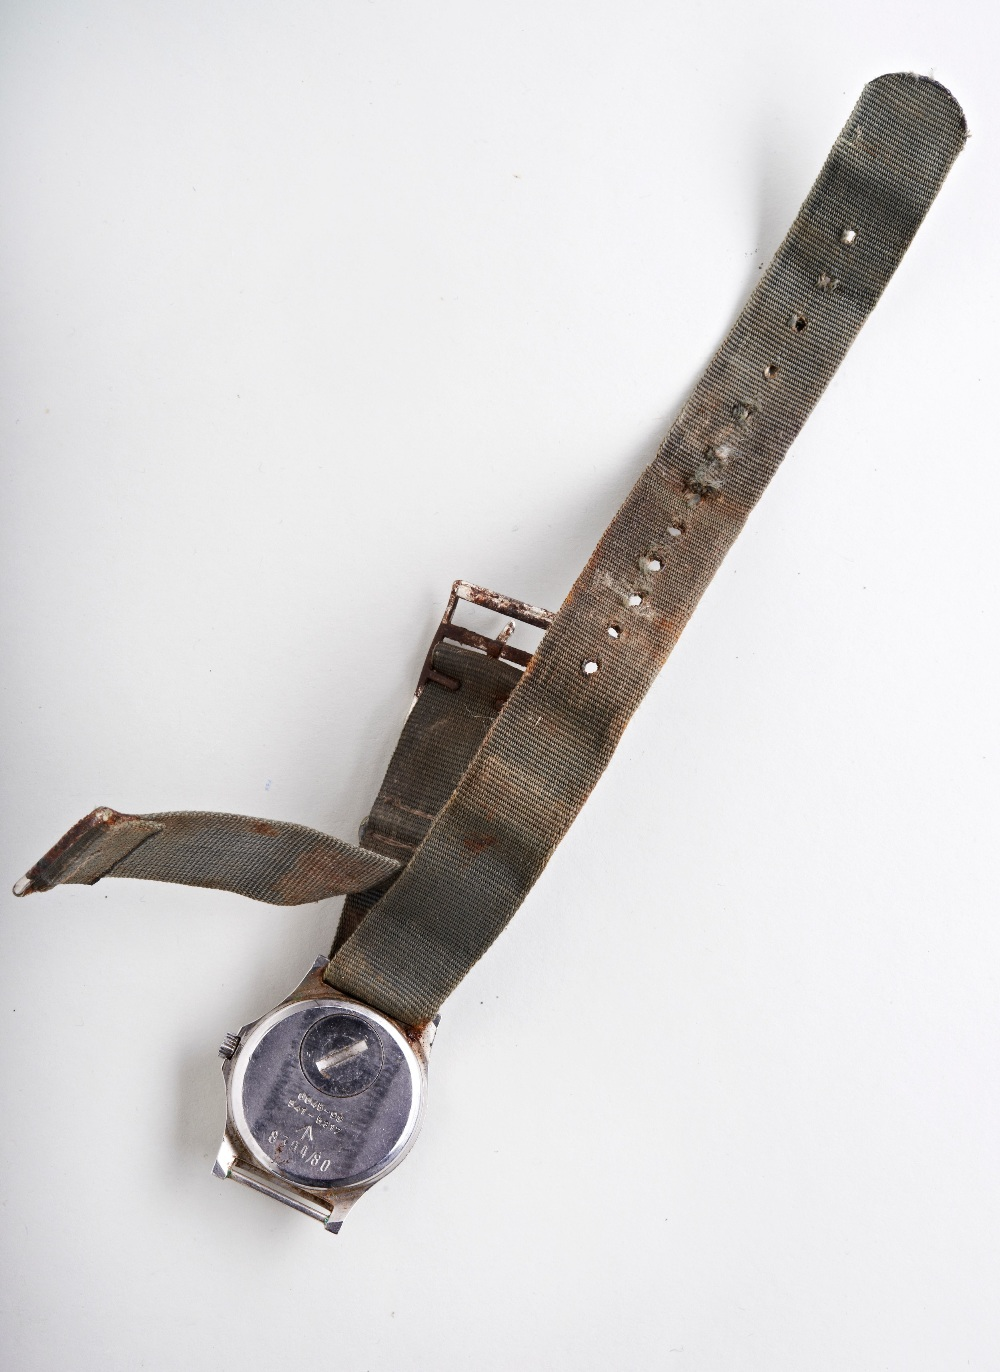 CWC 'FATBOY' MILITARY QUARTZ WATCH, c1980, with tritium dial, case backstamps with arrow and 6645-99 - Image 3 of 3